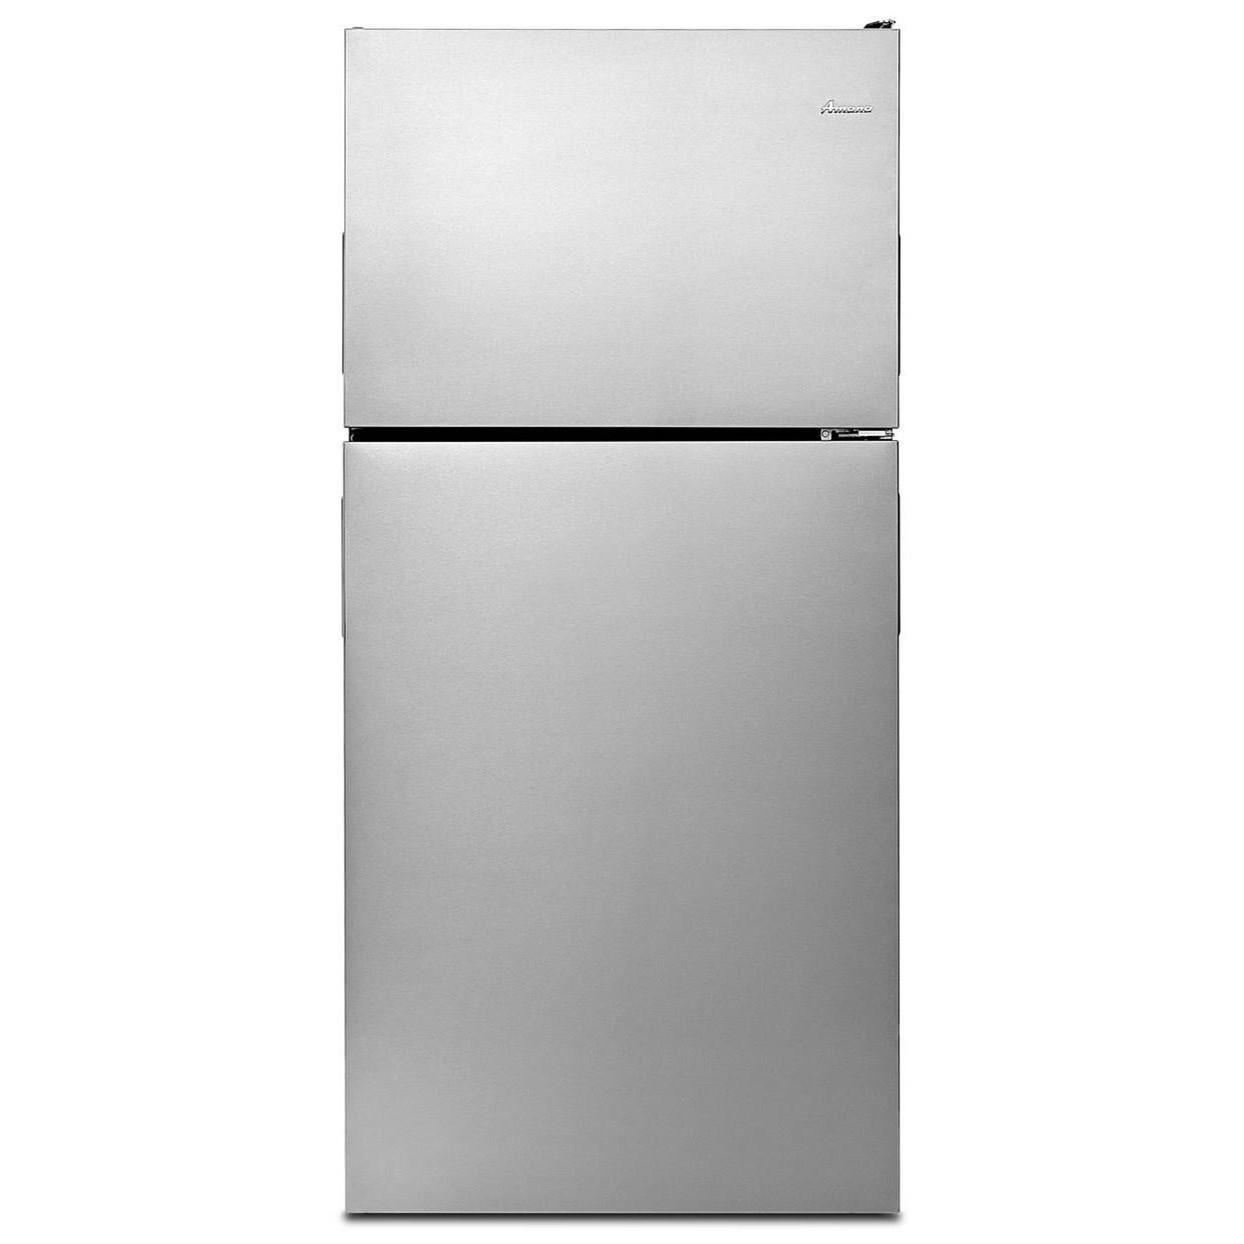 30-inch Wide Top-Freezer Refrigerator with G